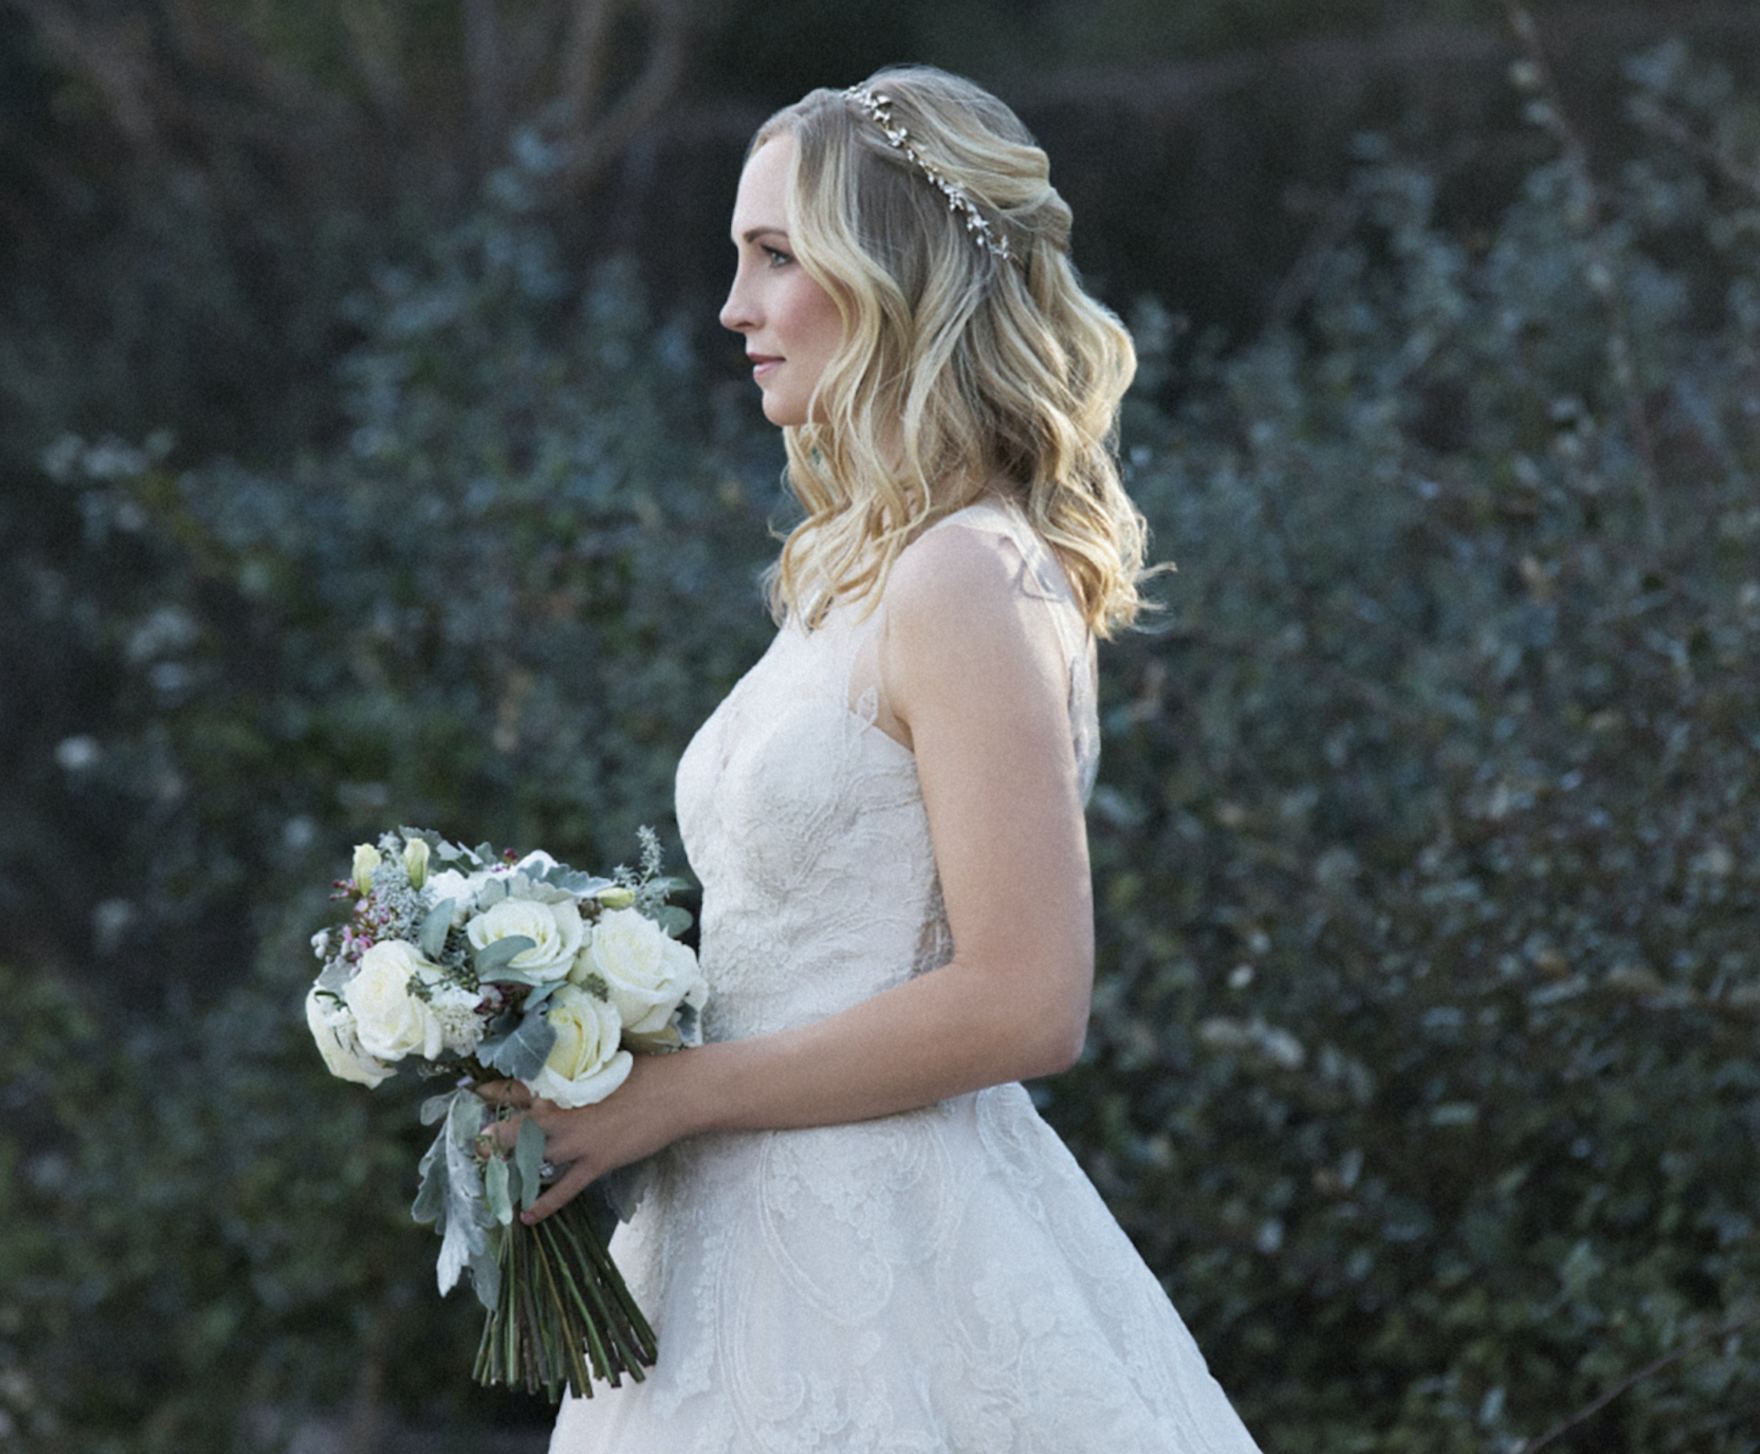 Caroline in a lace wedding dress